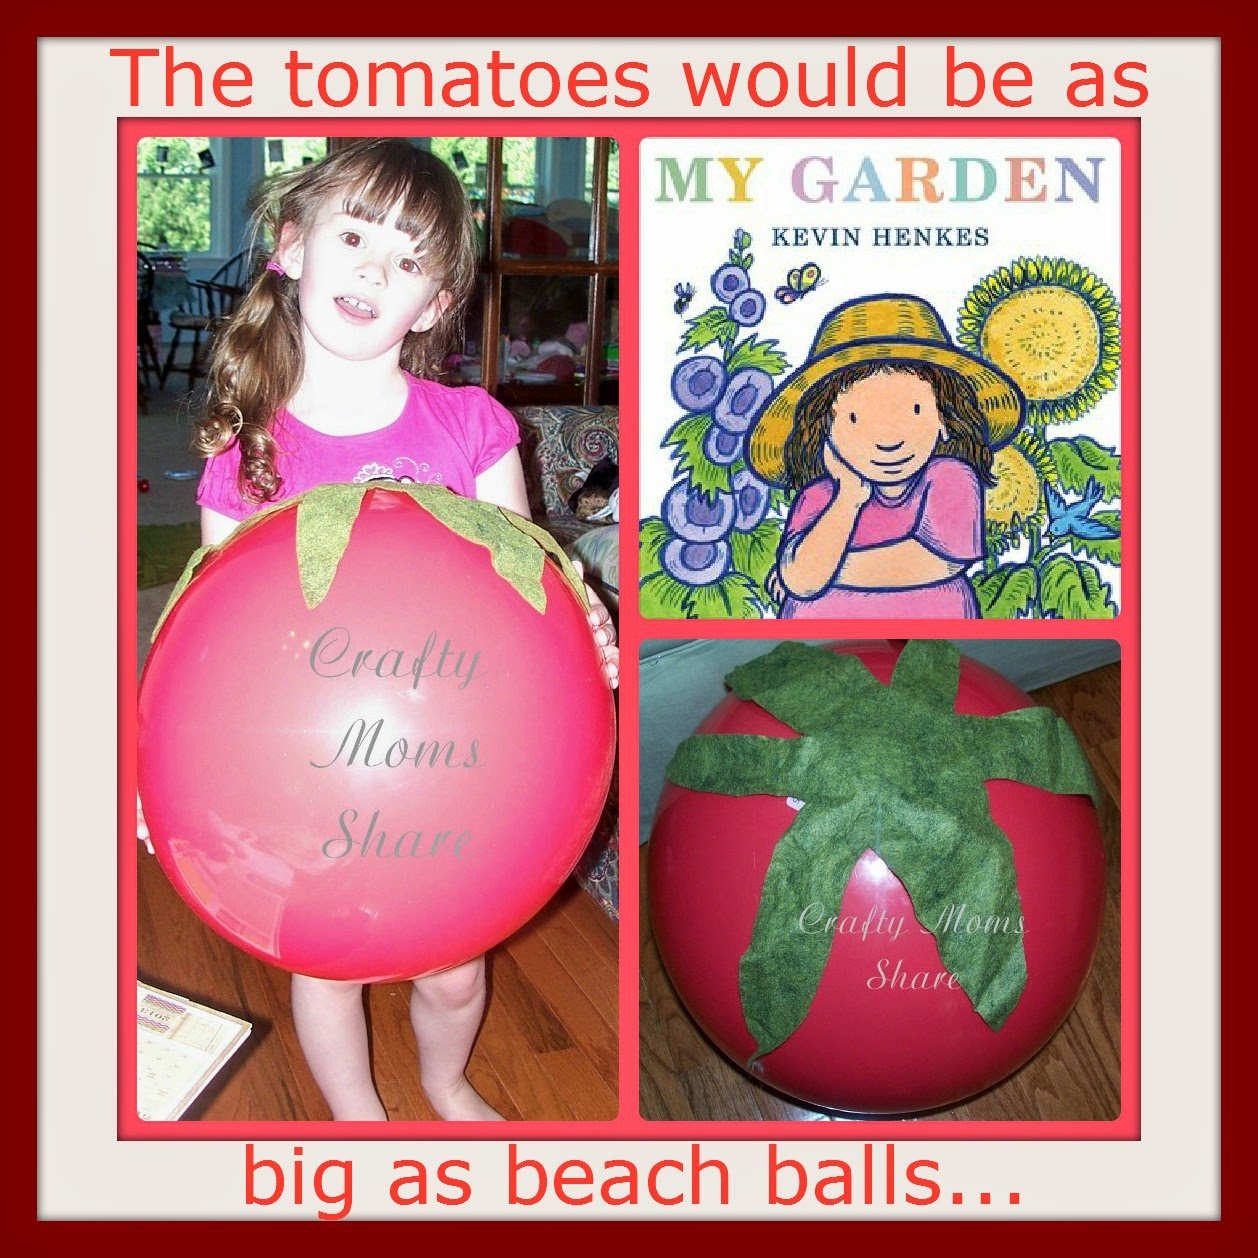 http://craftymomsshare.blogspot.com/2012/08/summer-virtual-book-club-for-kids-kevin_29.html